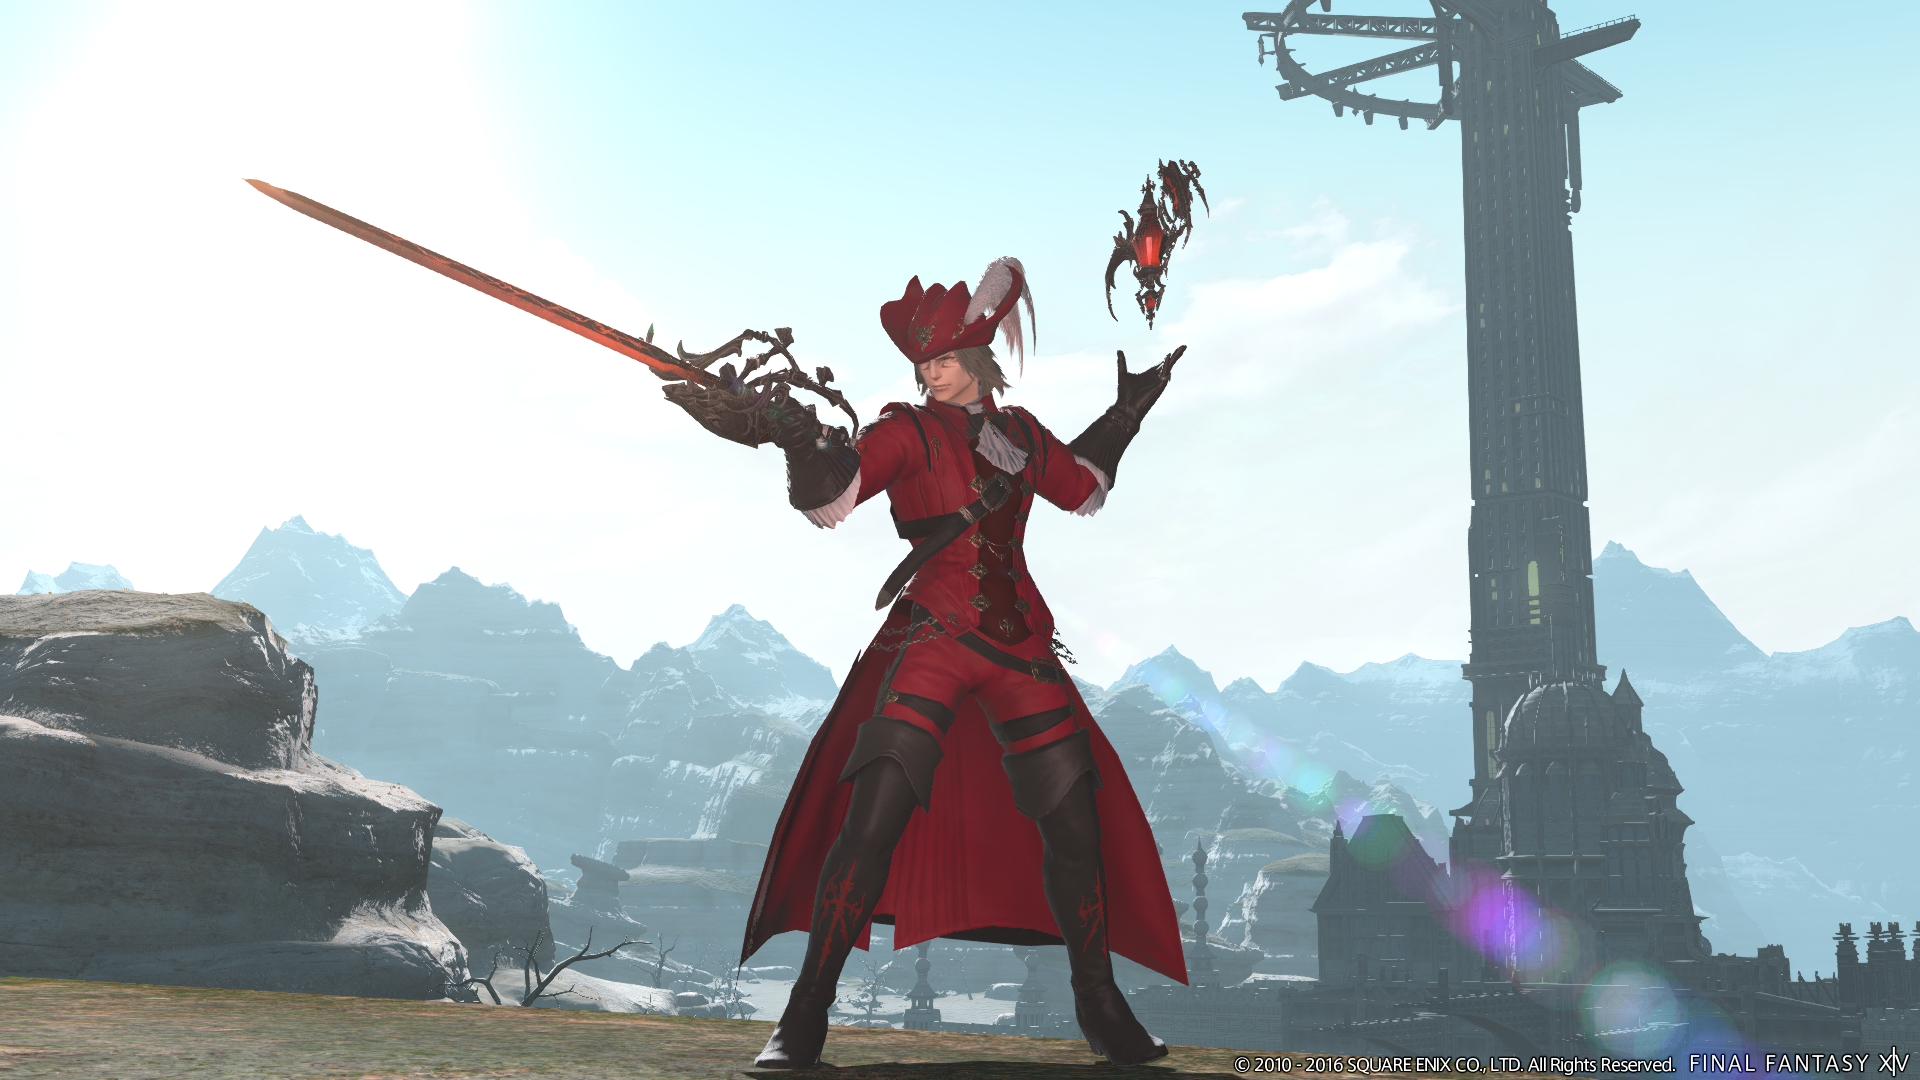 Final Fantasy XIV: Stormblood Expansion Announced